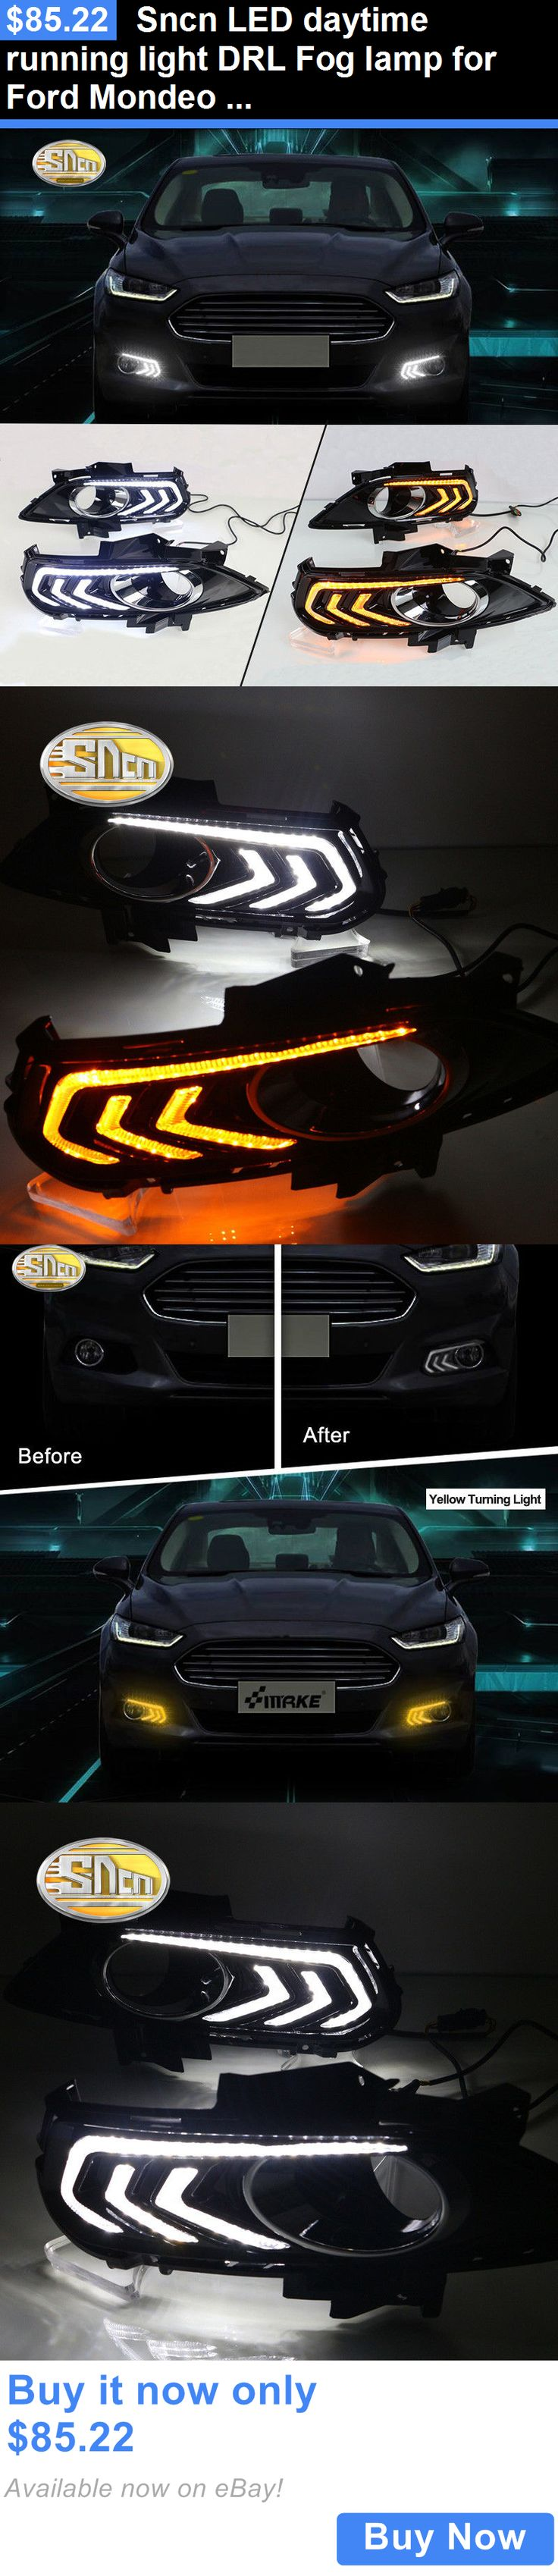 Motors parts and accessories sncn led daytime running light drl fog lamp for ford mondeo